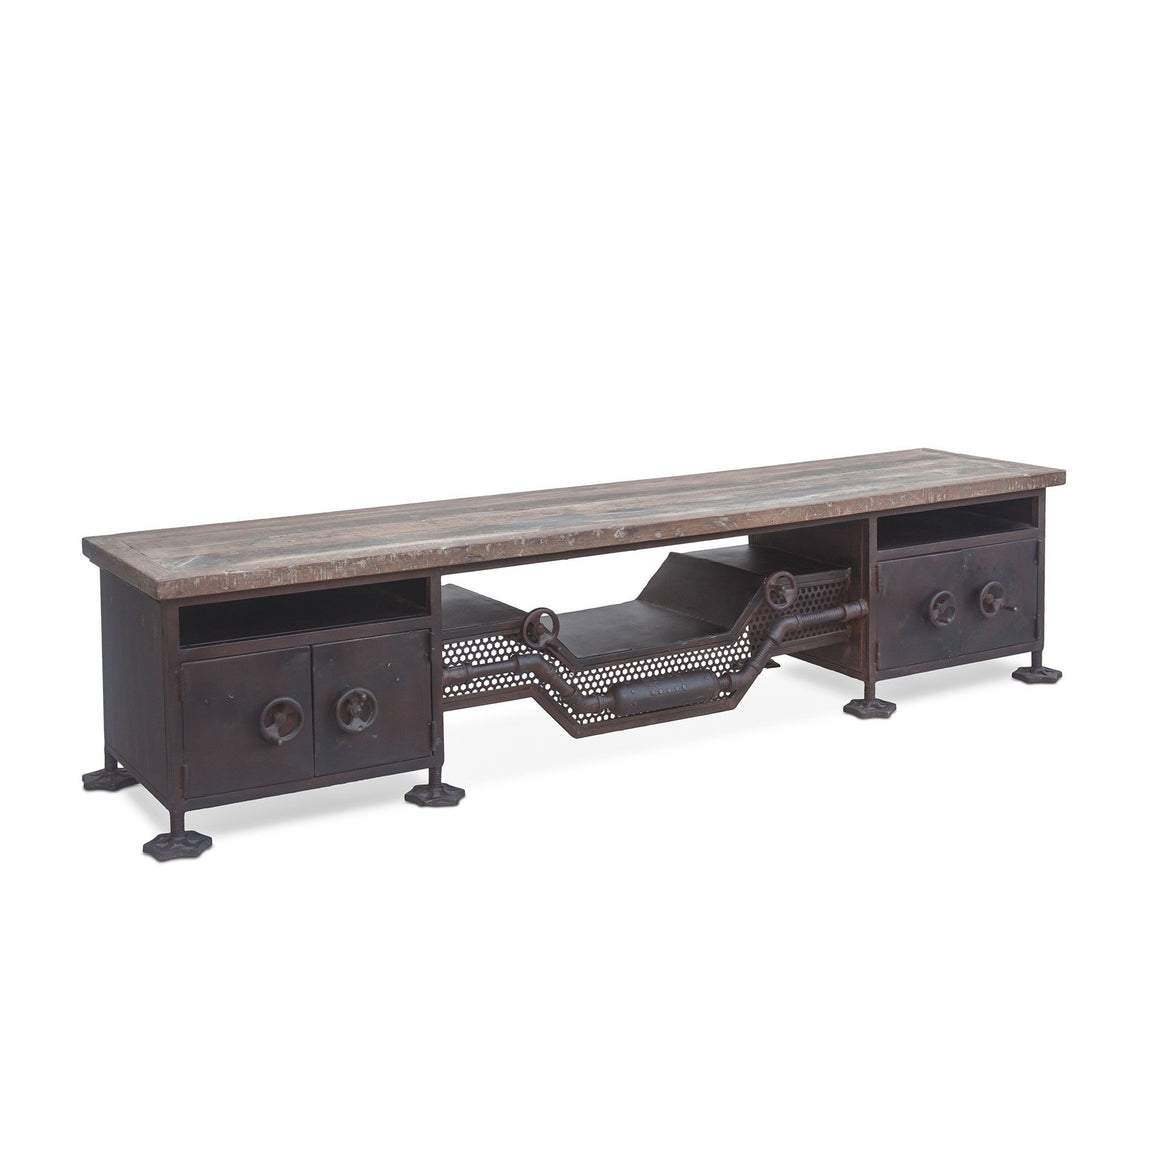 "Steampunk Low 74"" Sideboard - Rustic Deco Incorporated"